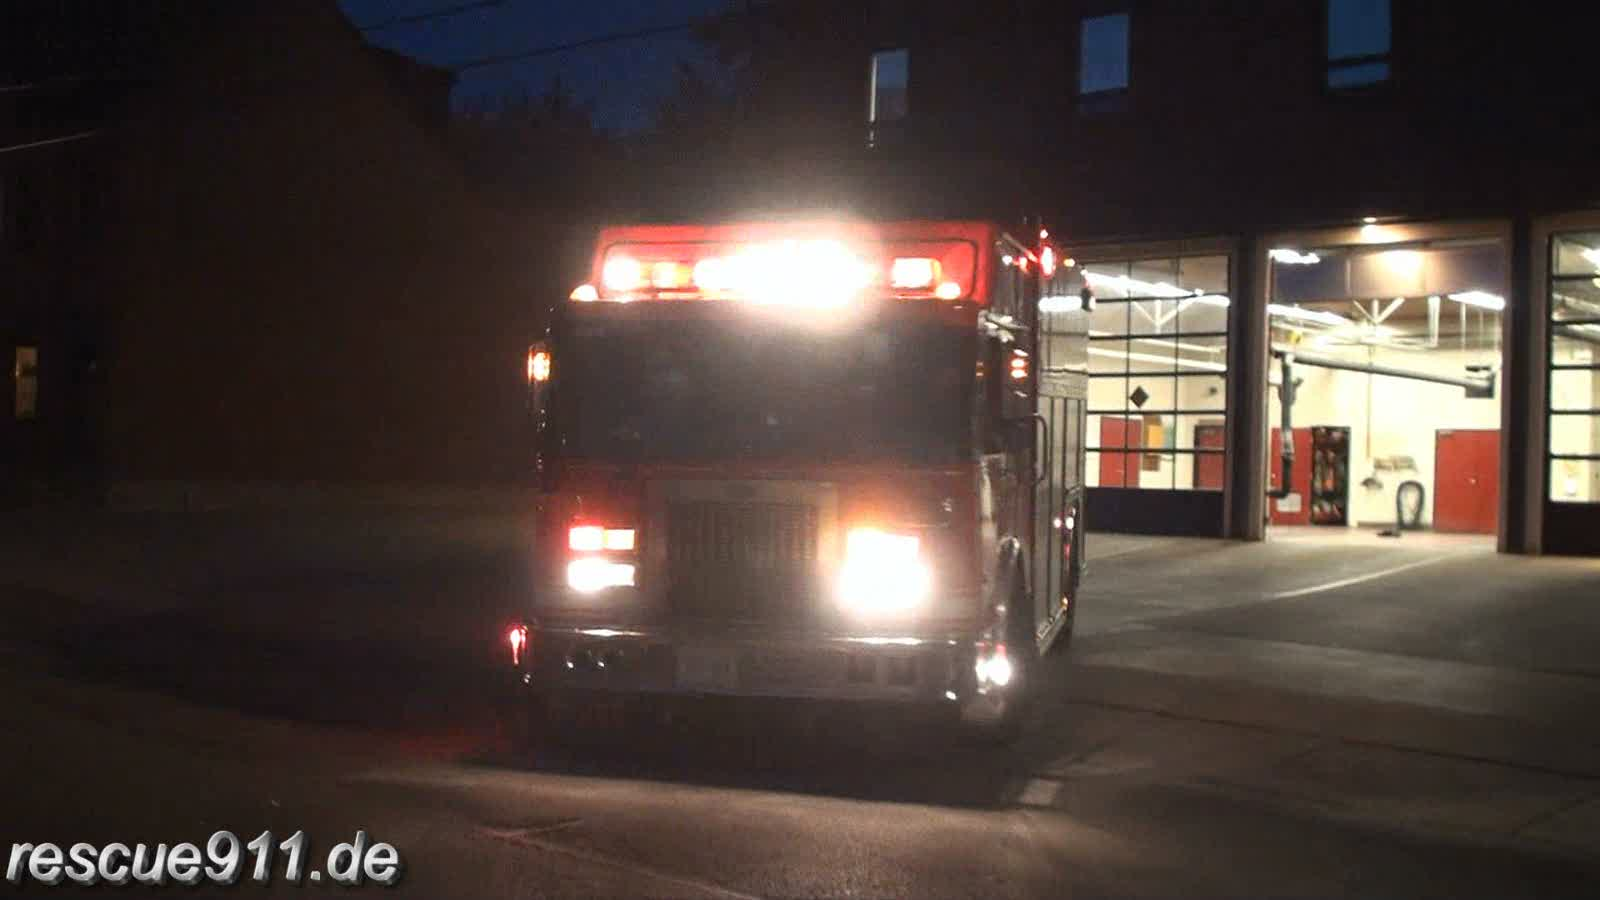 Squad 331 + Pump 332 Toronto Fire Services (stream)